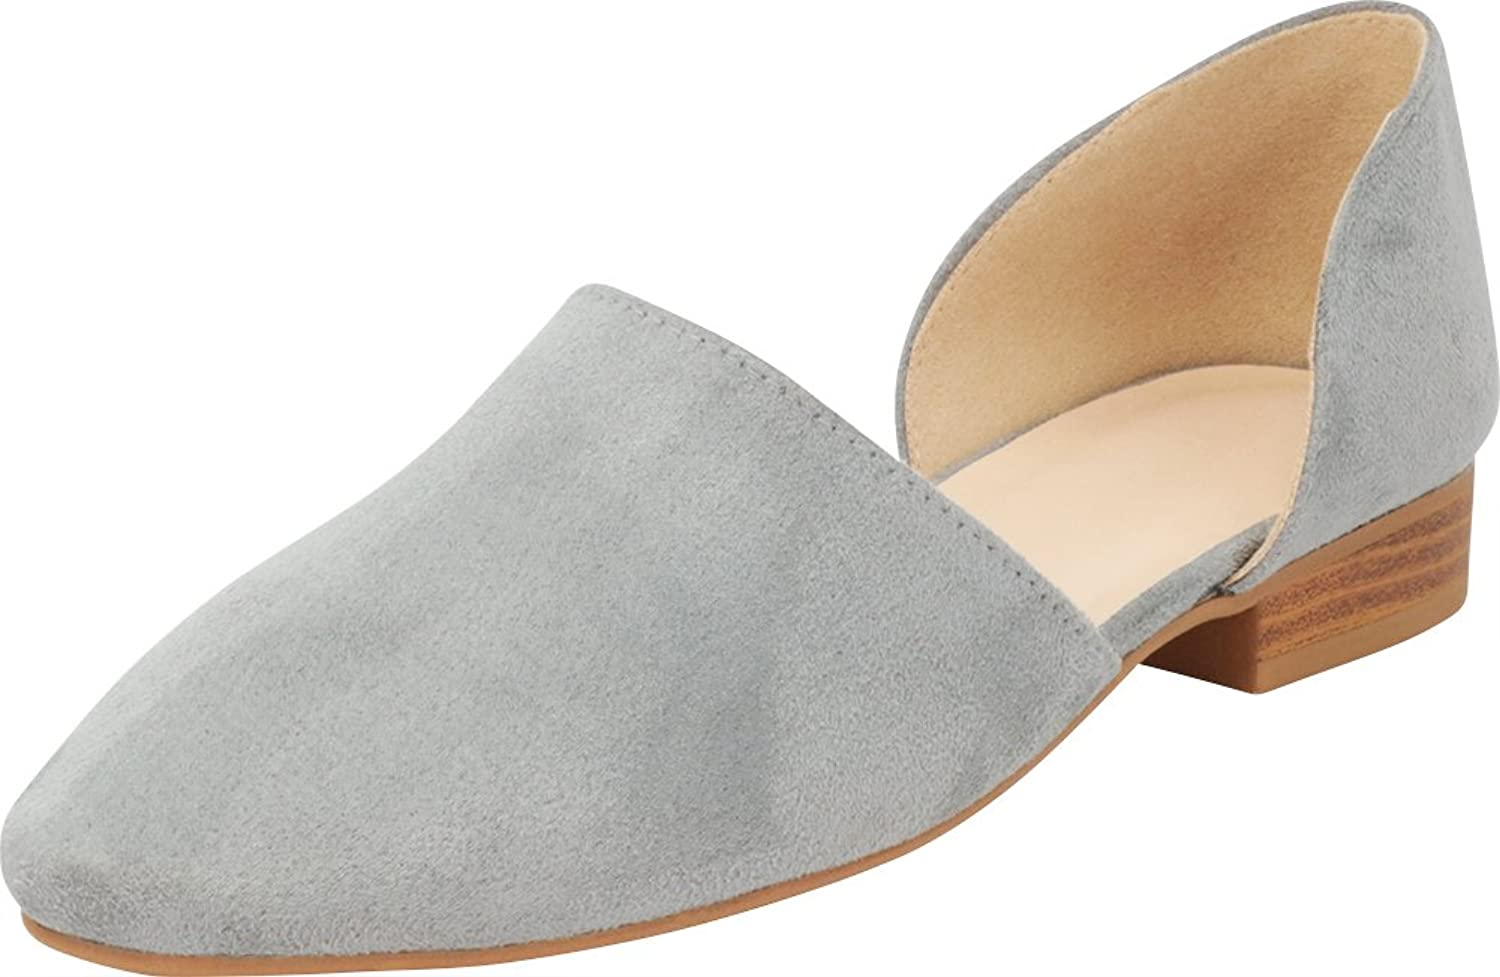 Cambridge Select Women's Almond Toe Side Cutout Stacked Low Heel Slip-On Shootie Loafer